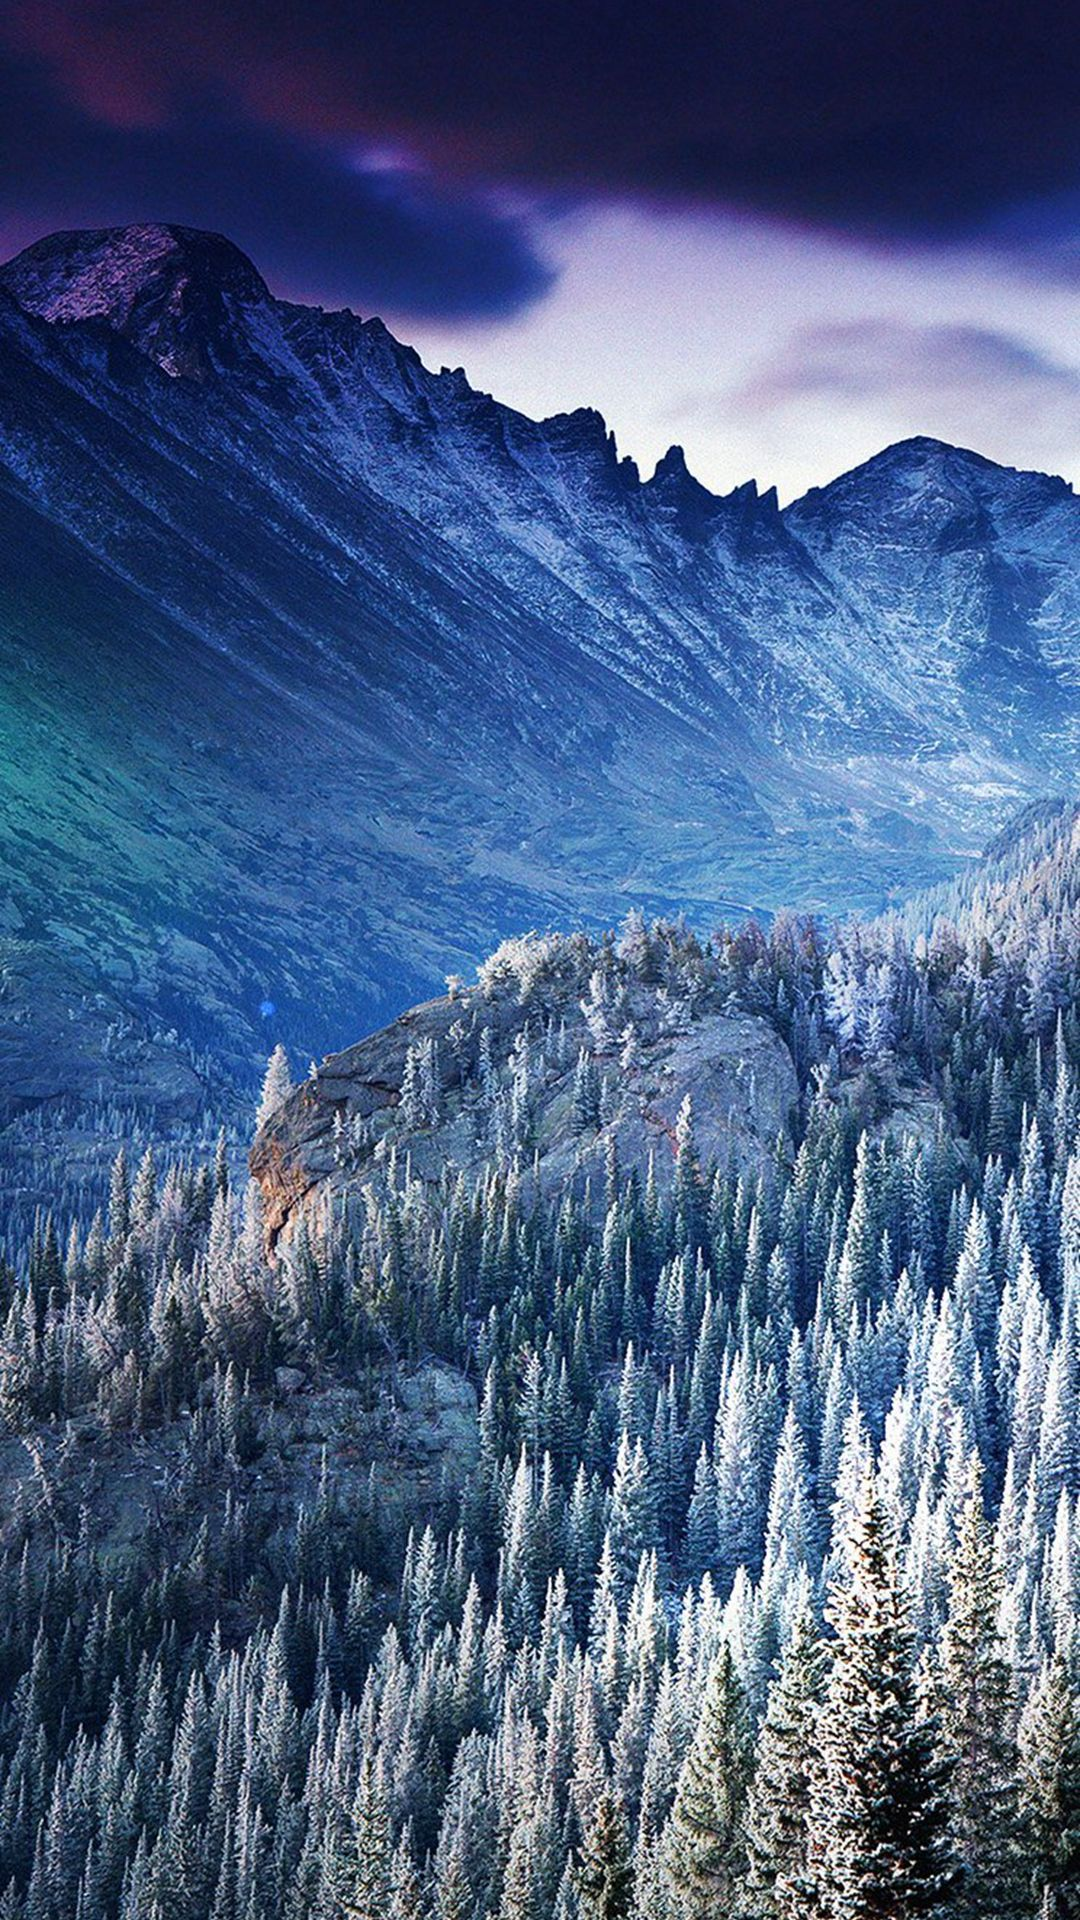 Wallpaper iphone winter - Winter Mountain Blue Woods Tree Nature Cold Iphone 6 Wallpaper